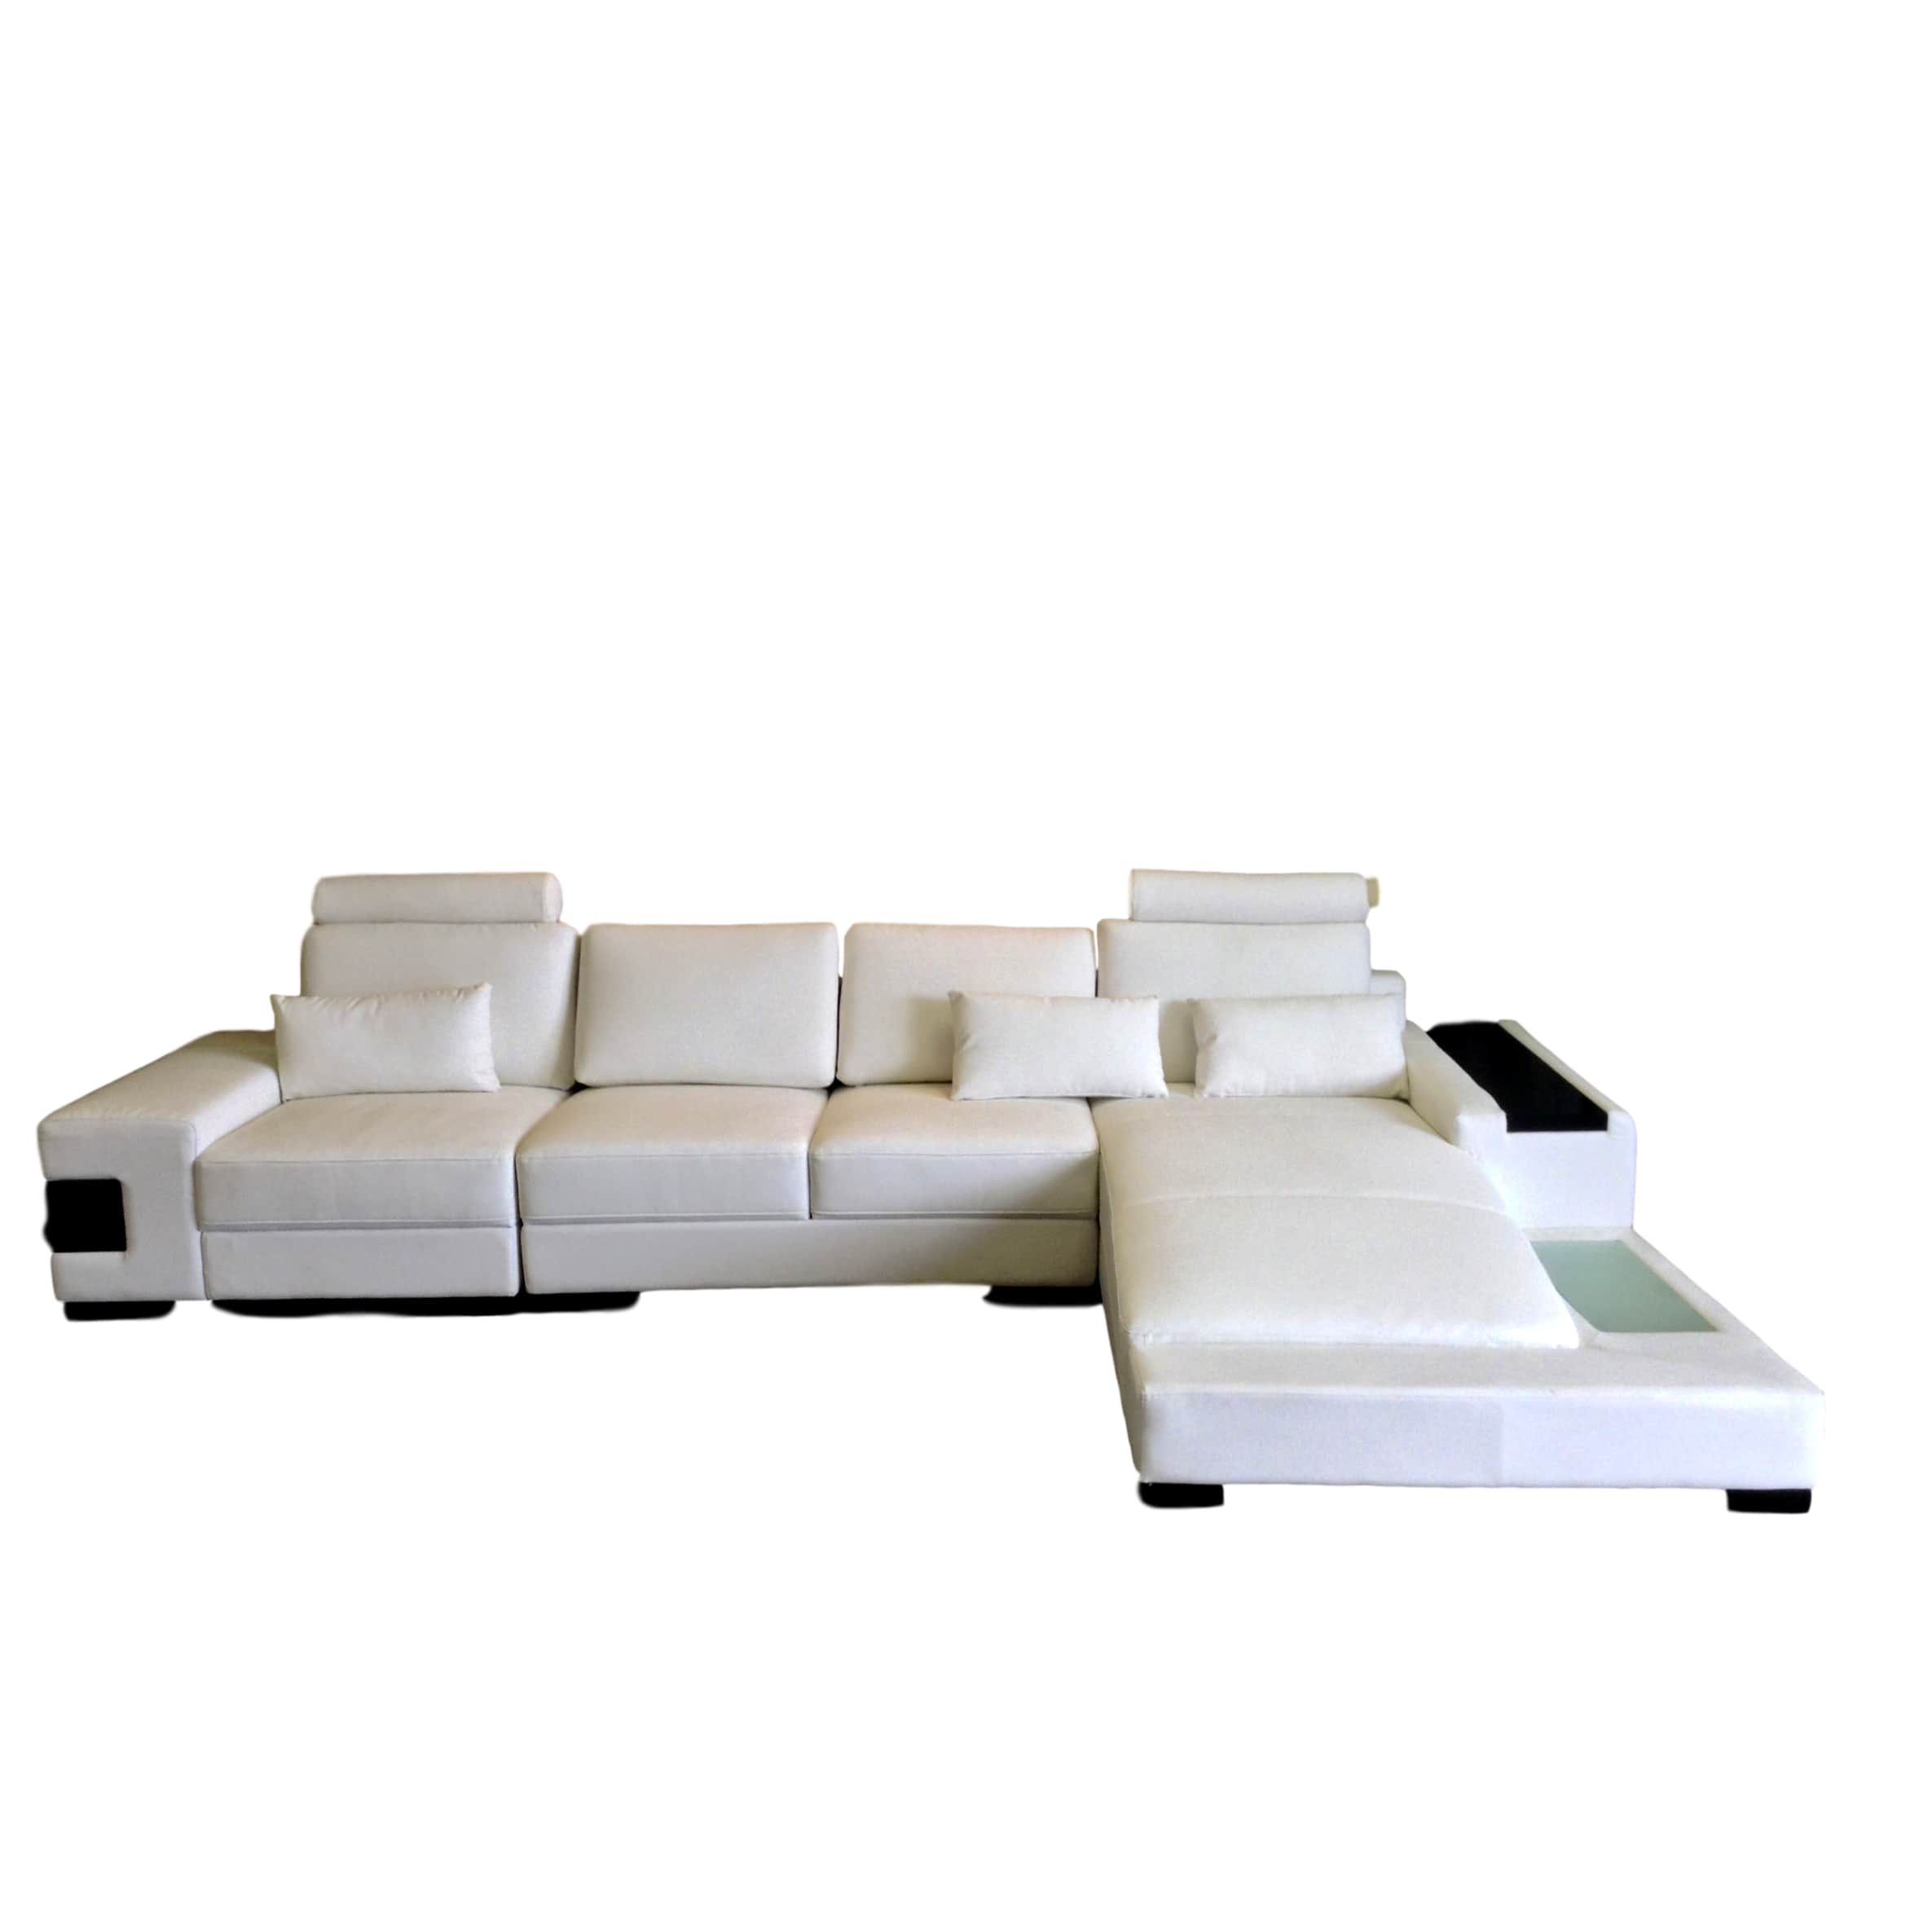 Diamond Modern White Leather Sectional Sofa with Lights